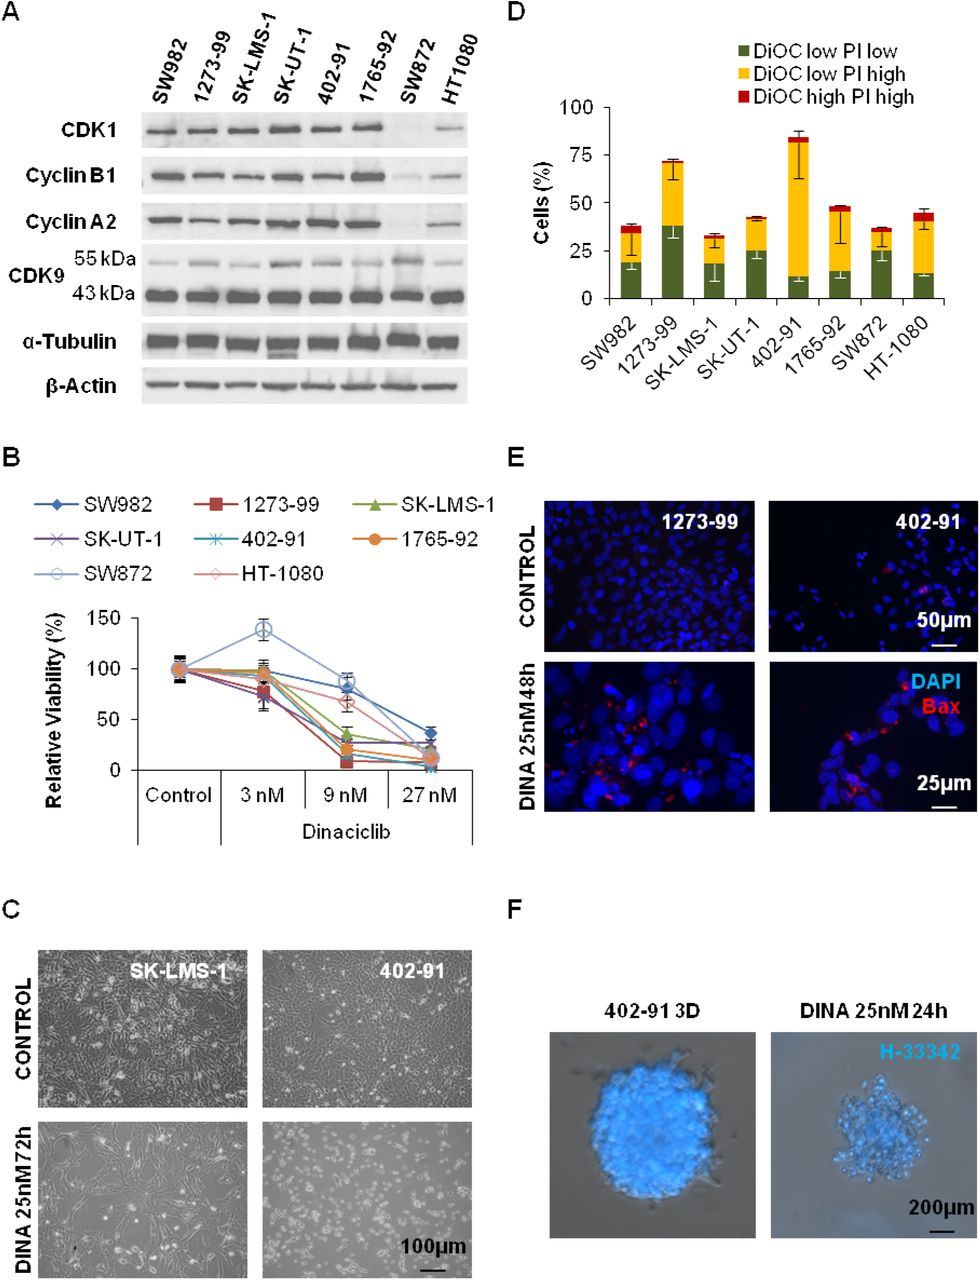 Bcl-xL inhibition enhances Dinaciclib-induced cell death in